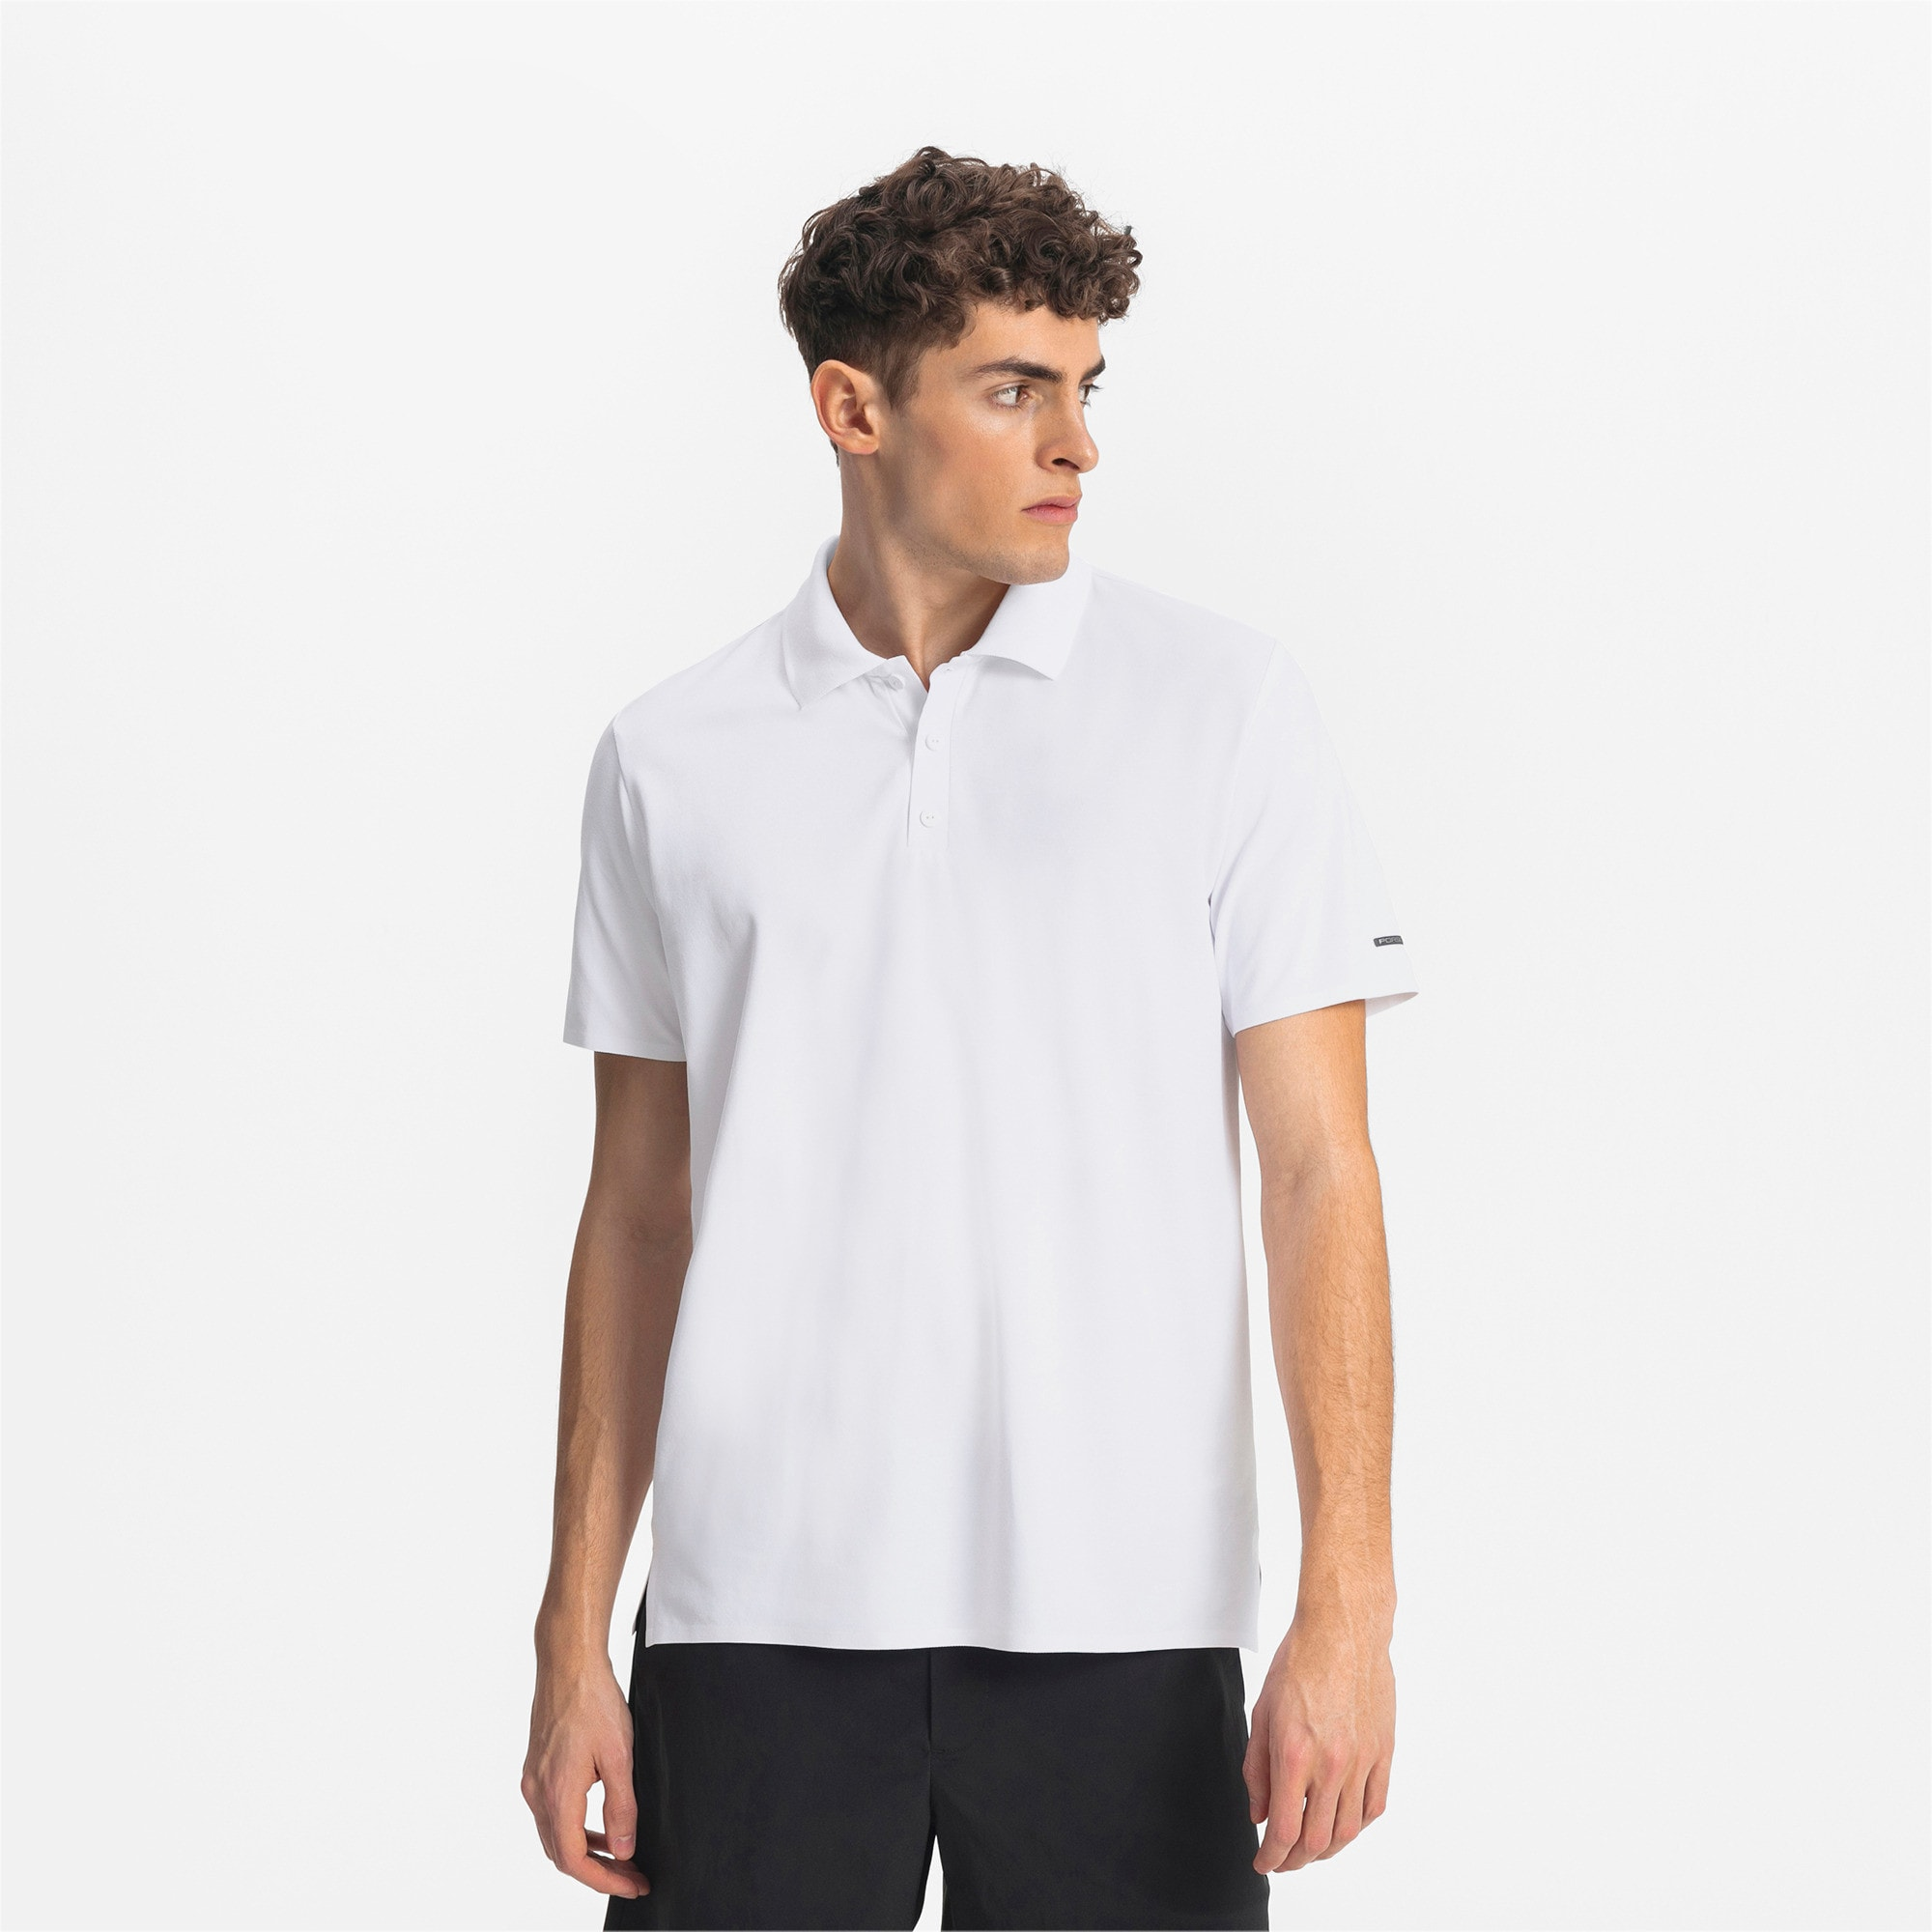 Porsche Design Herren Polo, Puma White, large